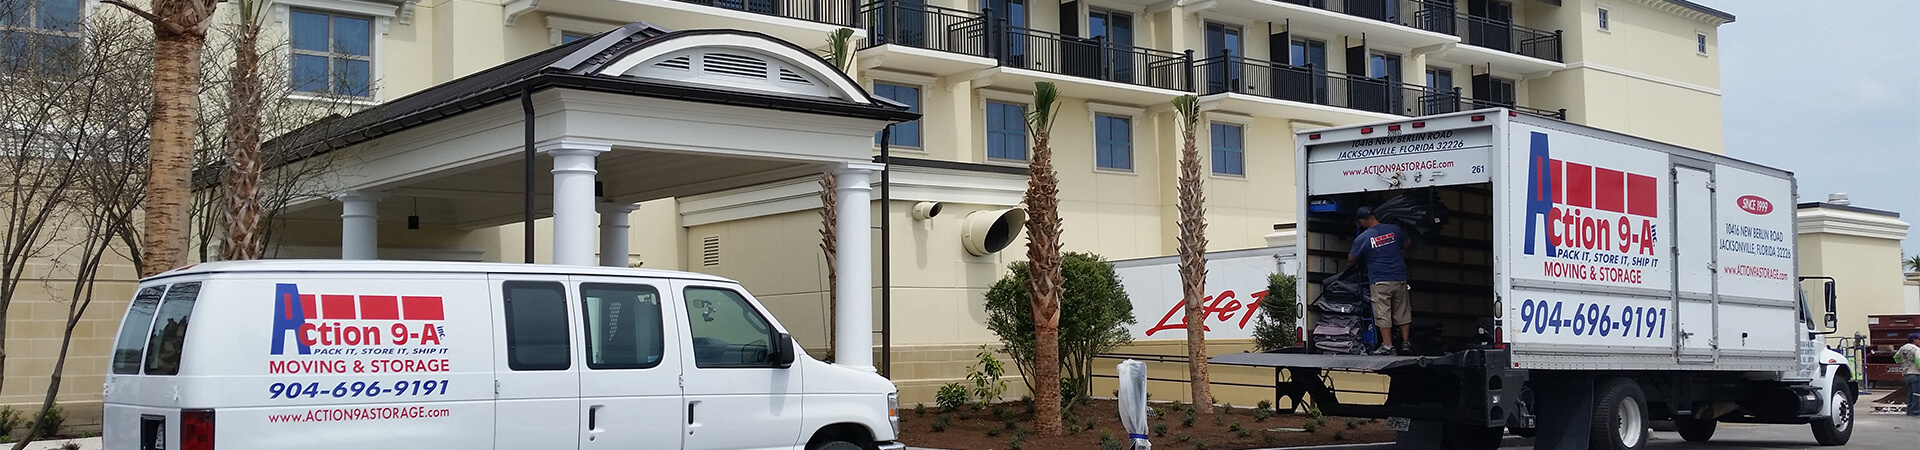 Jacksonville Moving Company - Commercial and Residential Movers